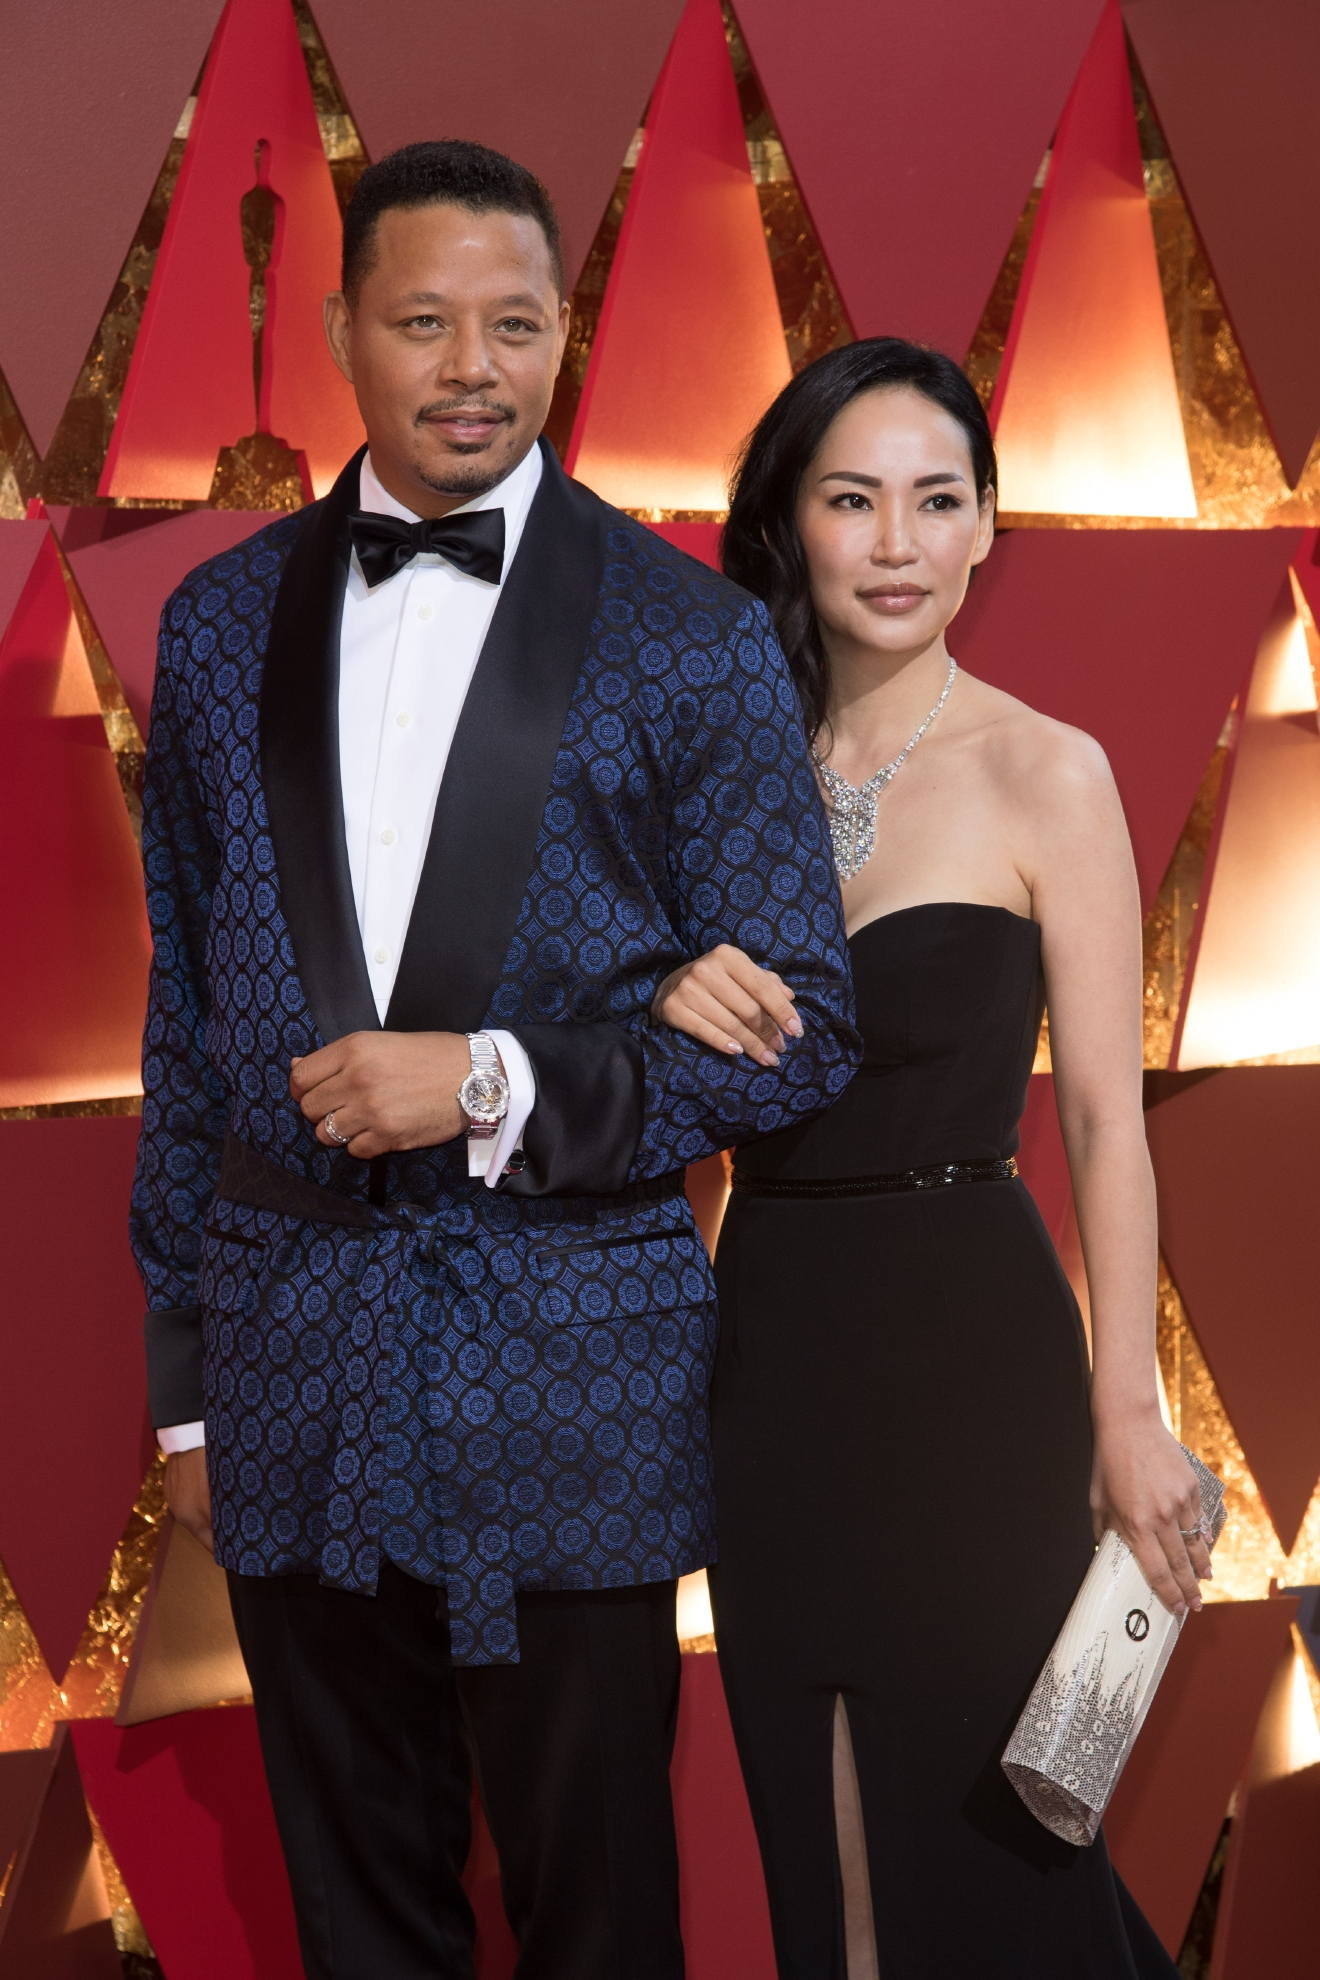 Actor Terrence Howard and wife, Mira Pak, arrive on the red carpet at The 89th Oscars® at the Dolby® Theatre in Hollywood, CA on Sunday, February 26, 2017. (A.M.P.A.S.)